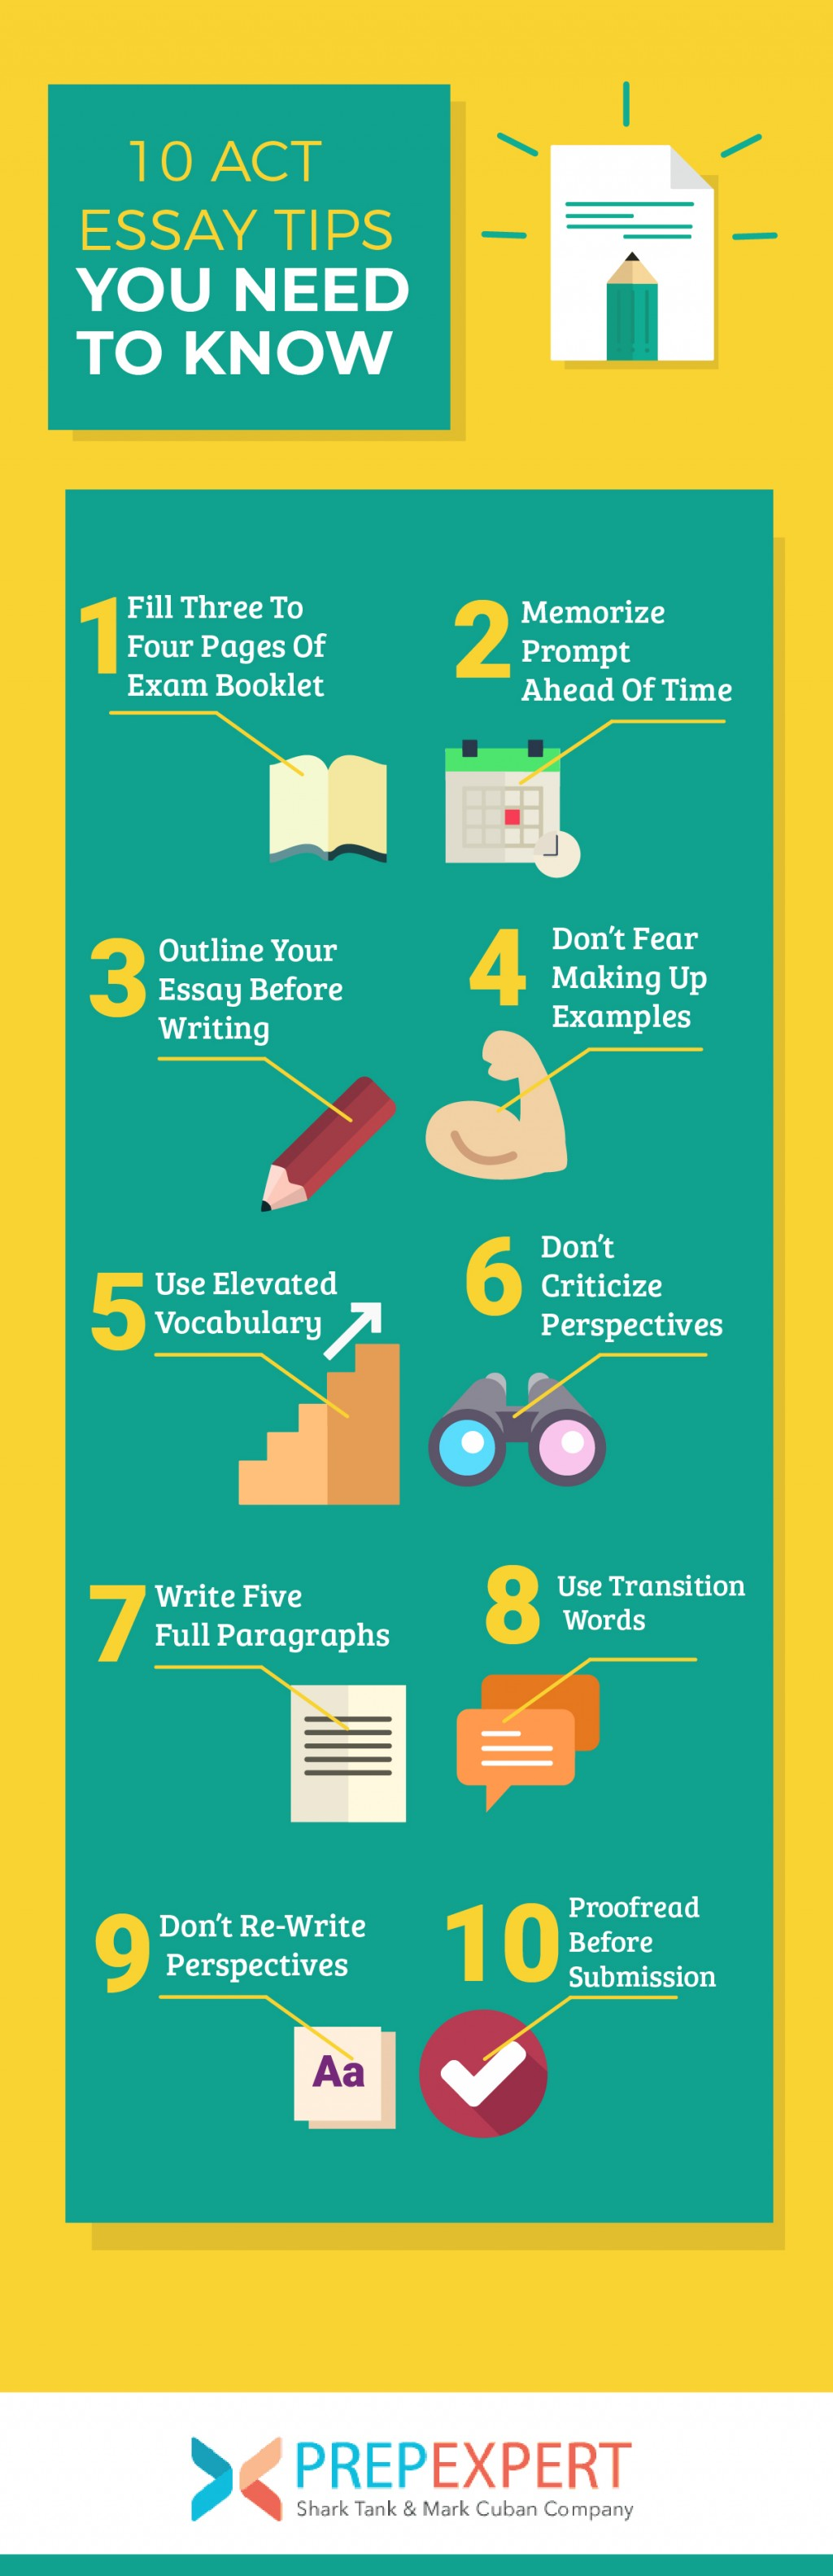 017 Essay Example Act 235585 Essayinfographics 052918 Fearsome Test Time Prompt 2016 Large